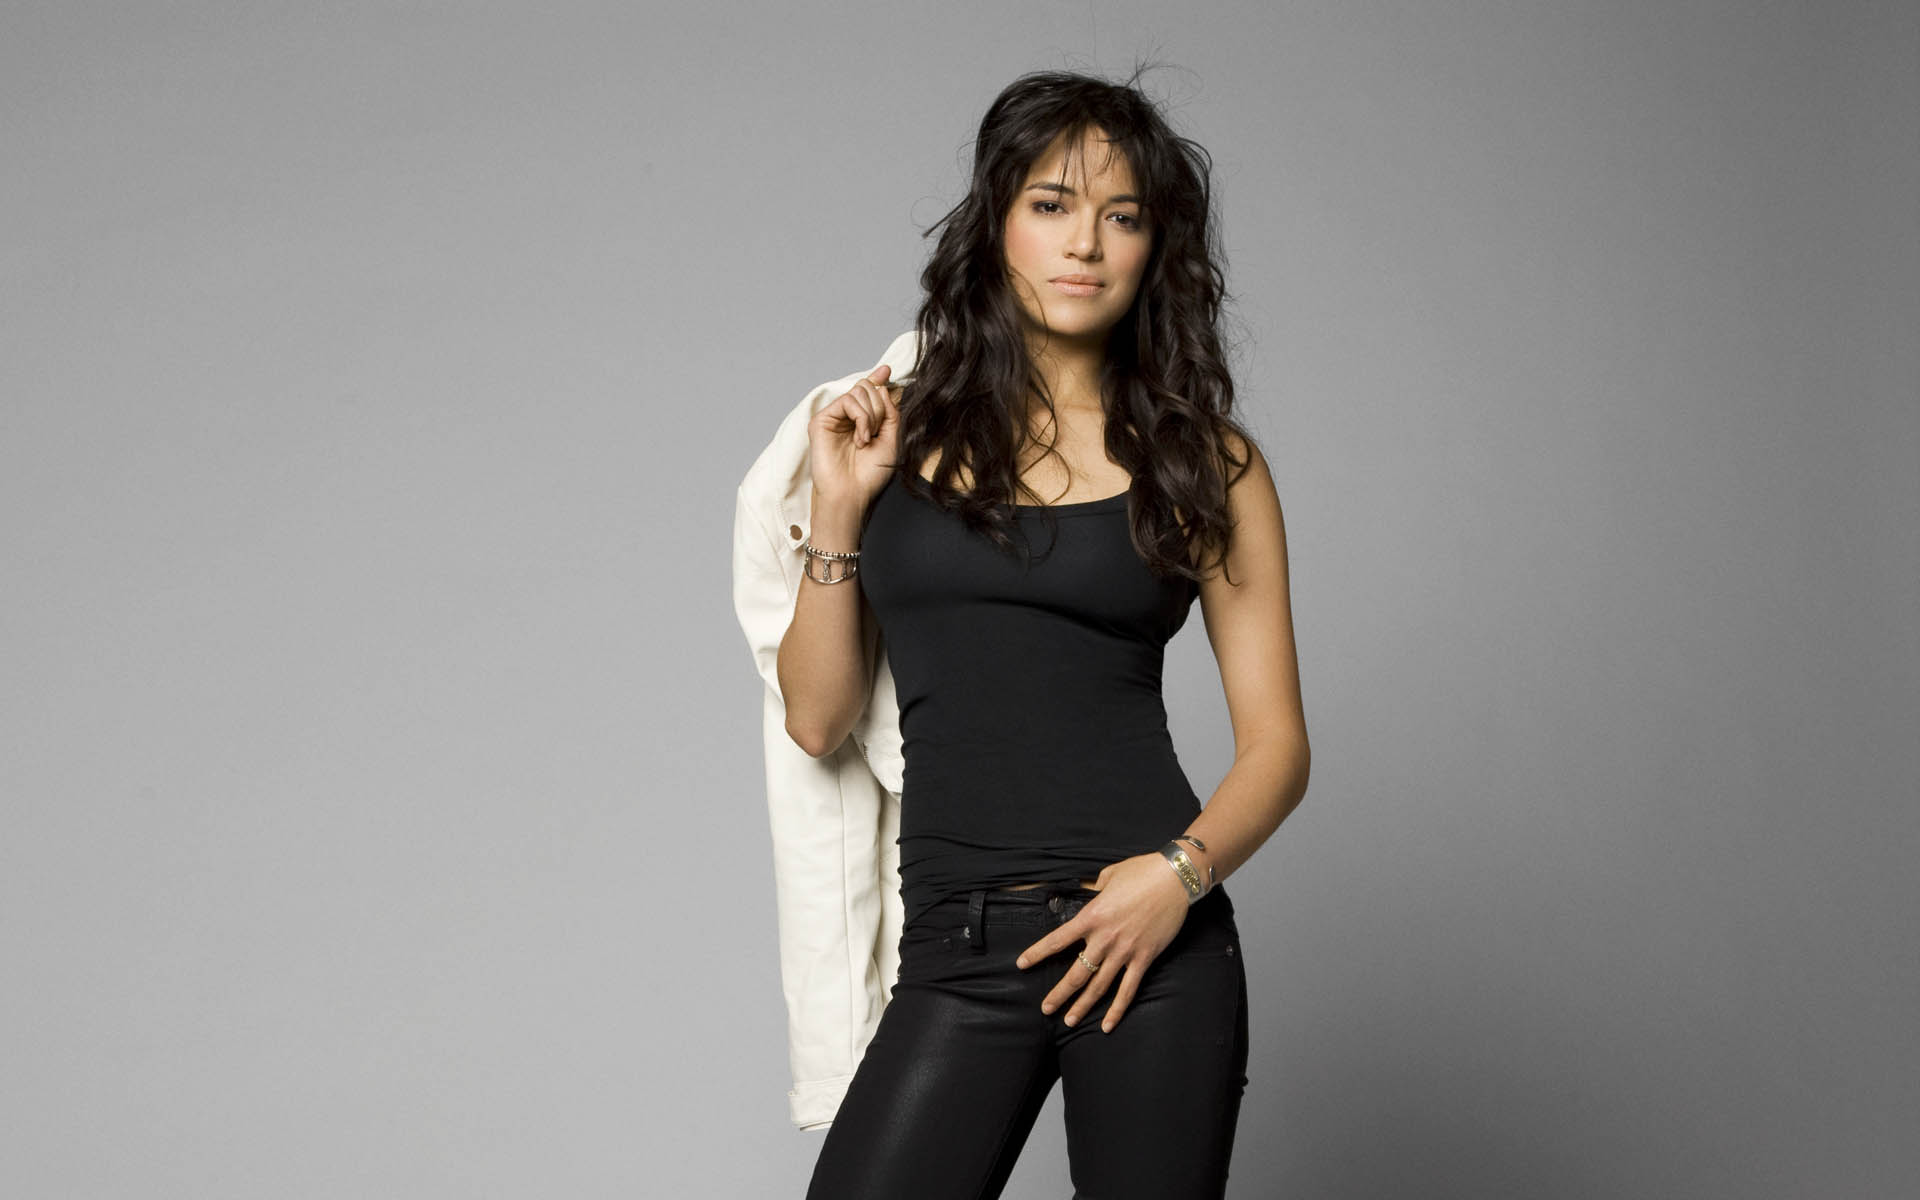 michelle-rodriguez-hot-and-sexy